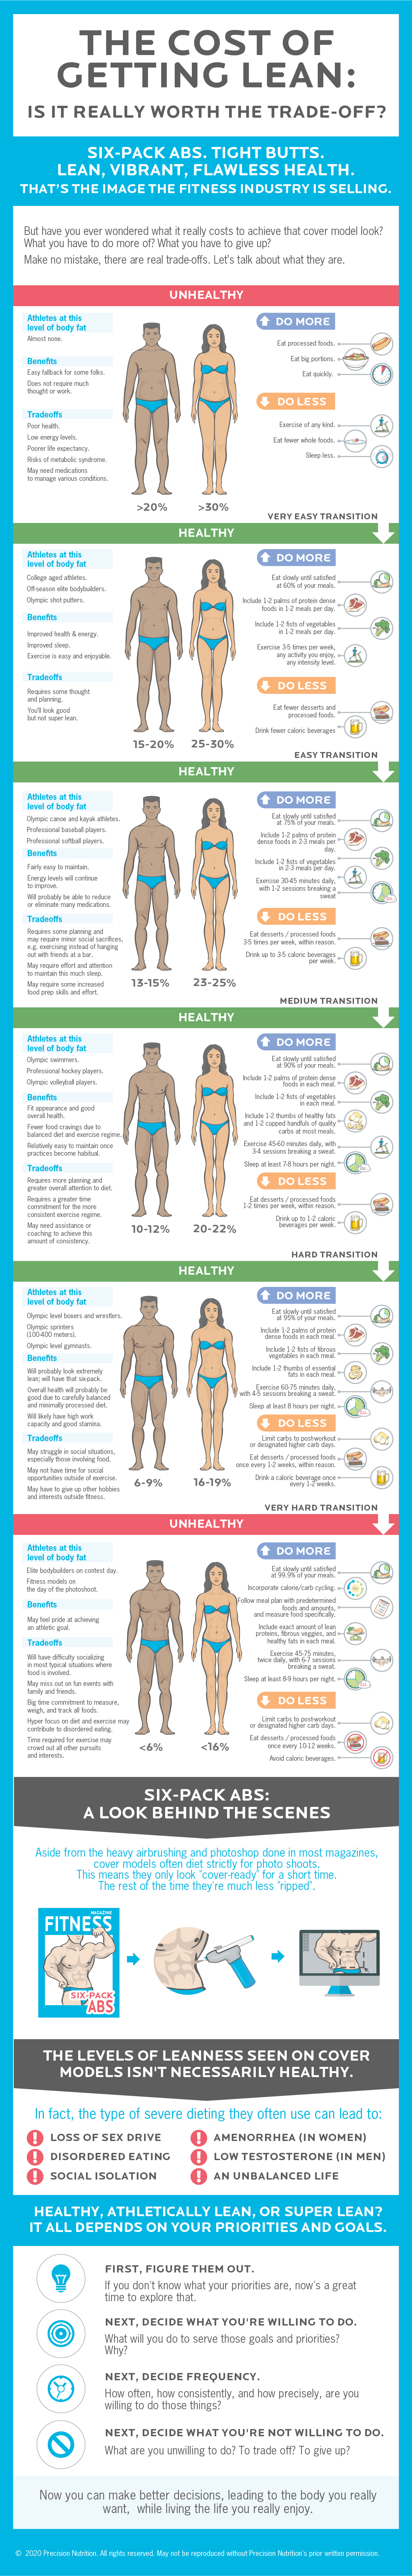 Every body fat percentage range requires trade-offs between effort and looks. In fact, when you're in single digit BF%, you are actually unhealthy. Before you decide                     on your target BF%, understand what kind of lifestyle you'll have to lead and make an informed committment to it before you begin.